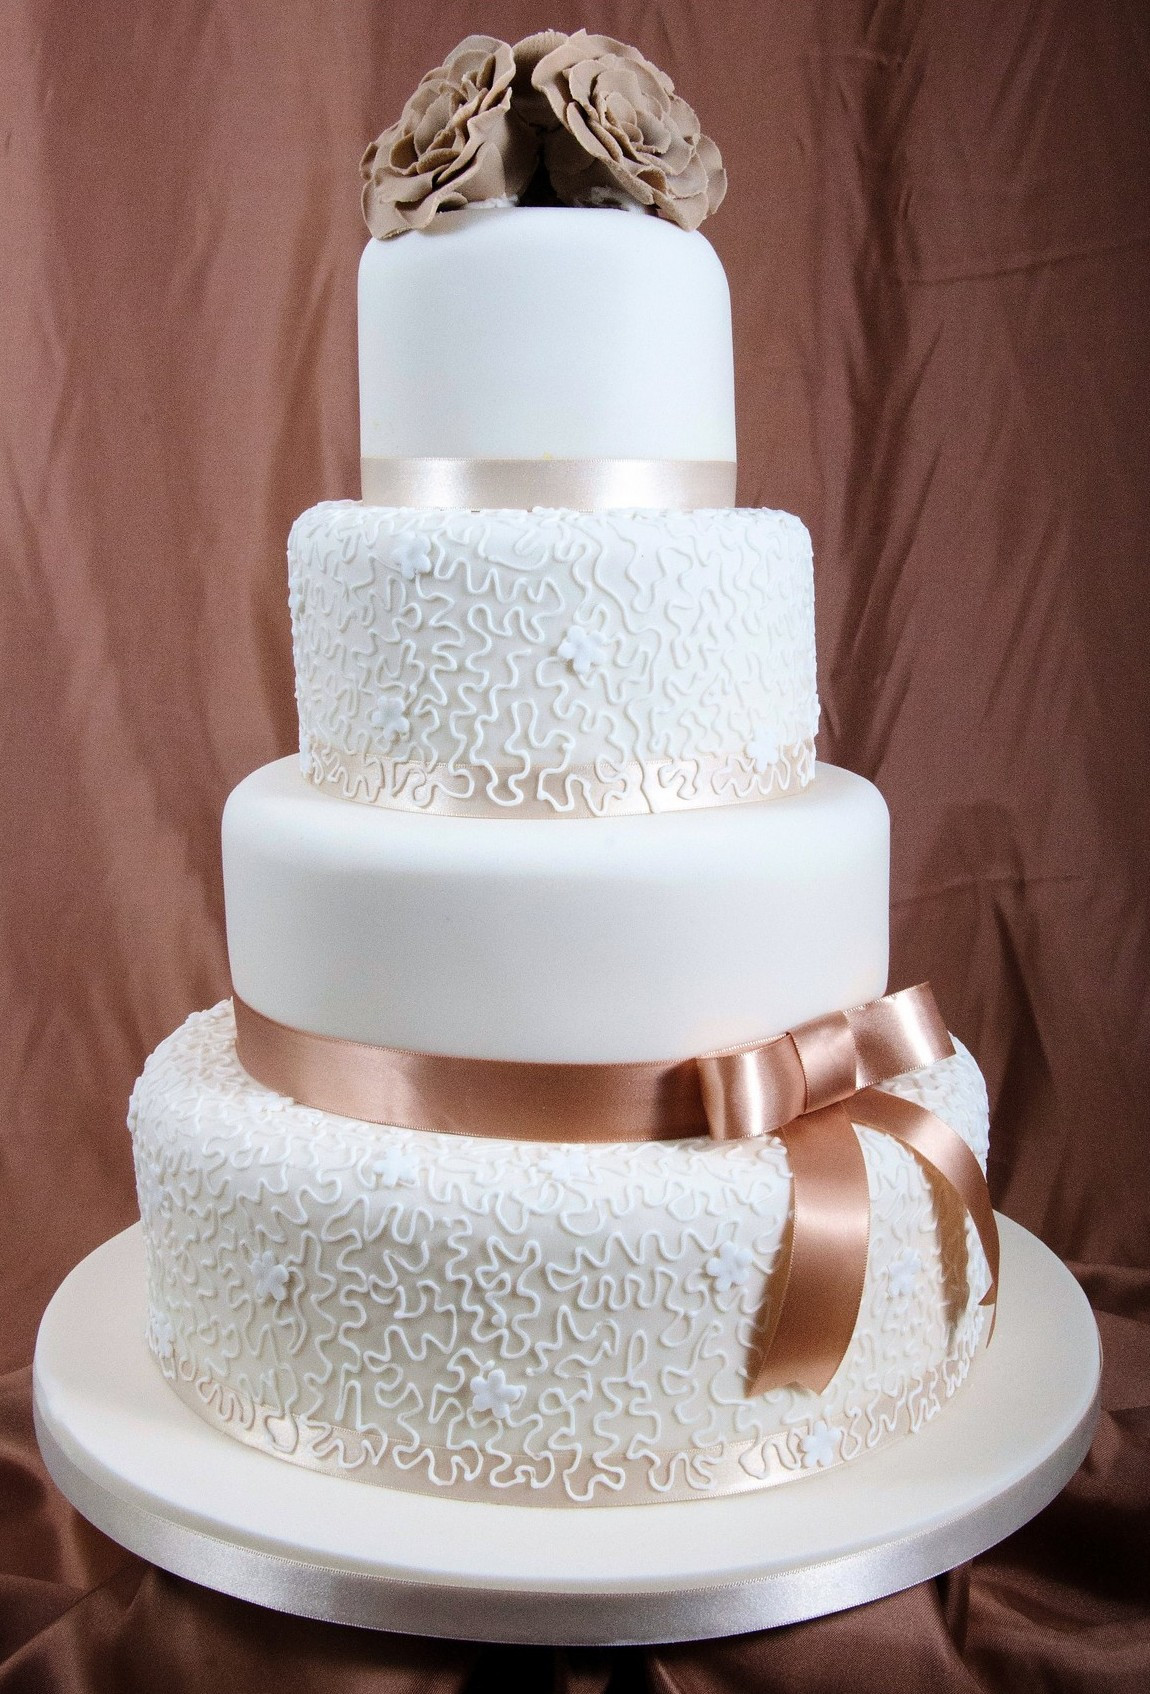 Wedding Cakes Picture Gallery  Wedding Cake A Gallery of Cakes by Shelly WeddingDates